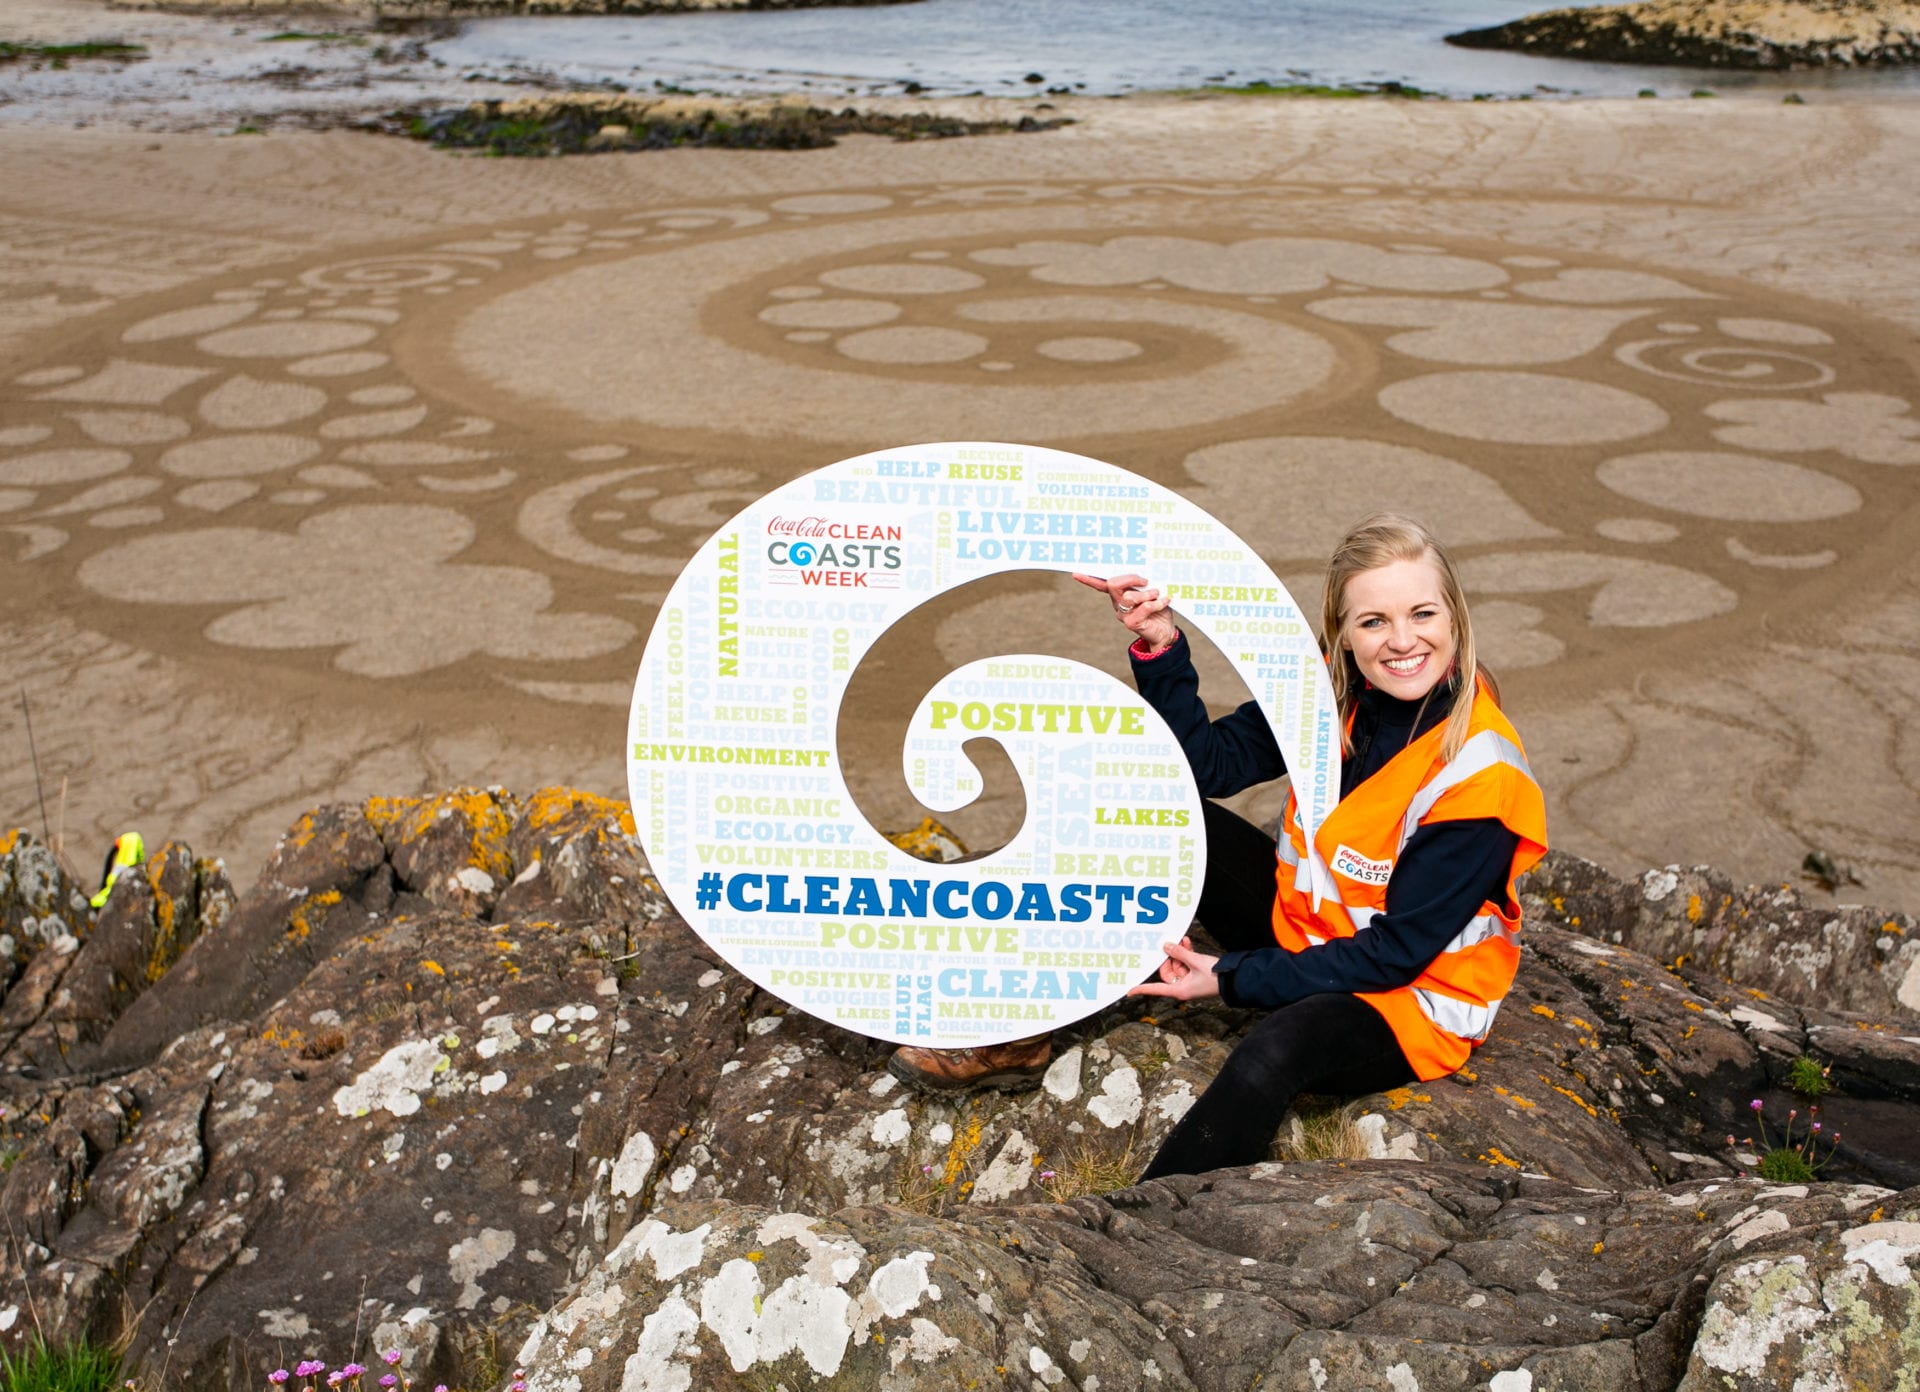 Clean Coasts Week